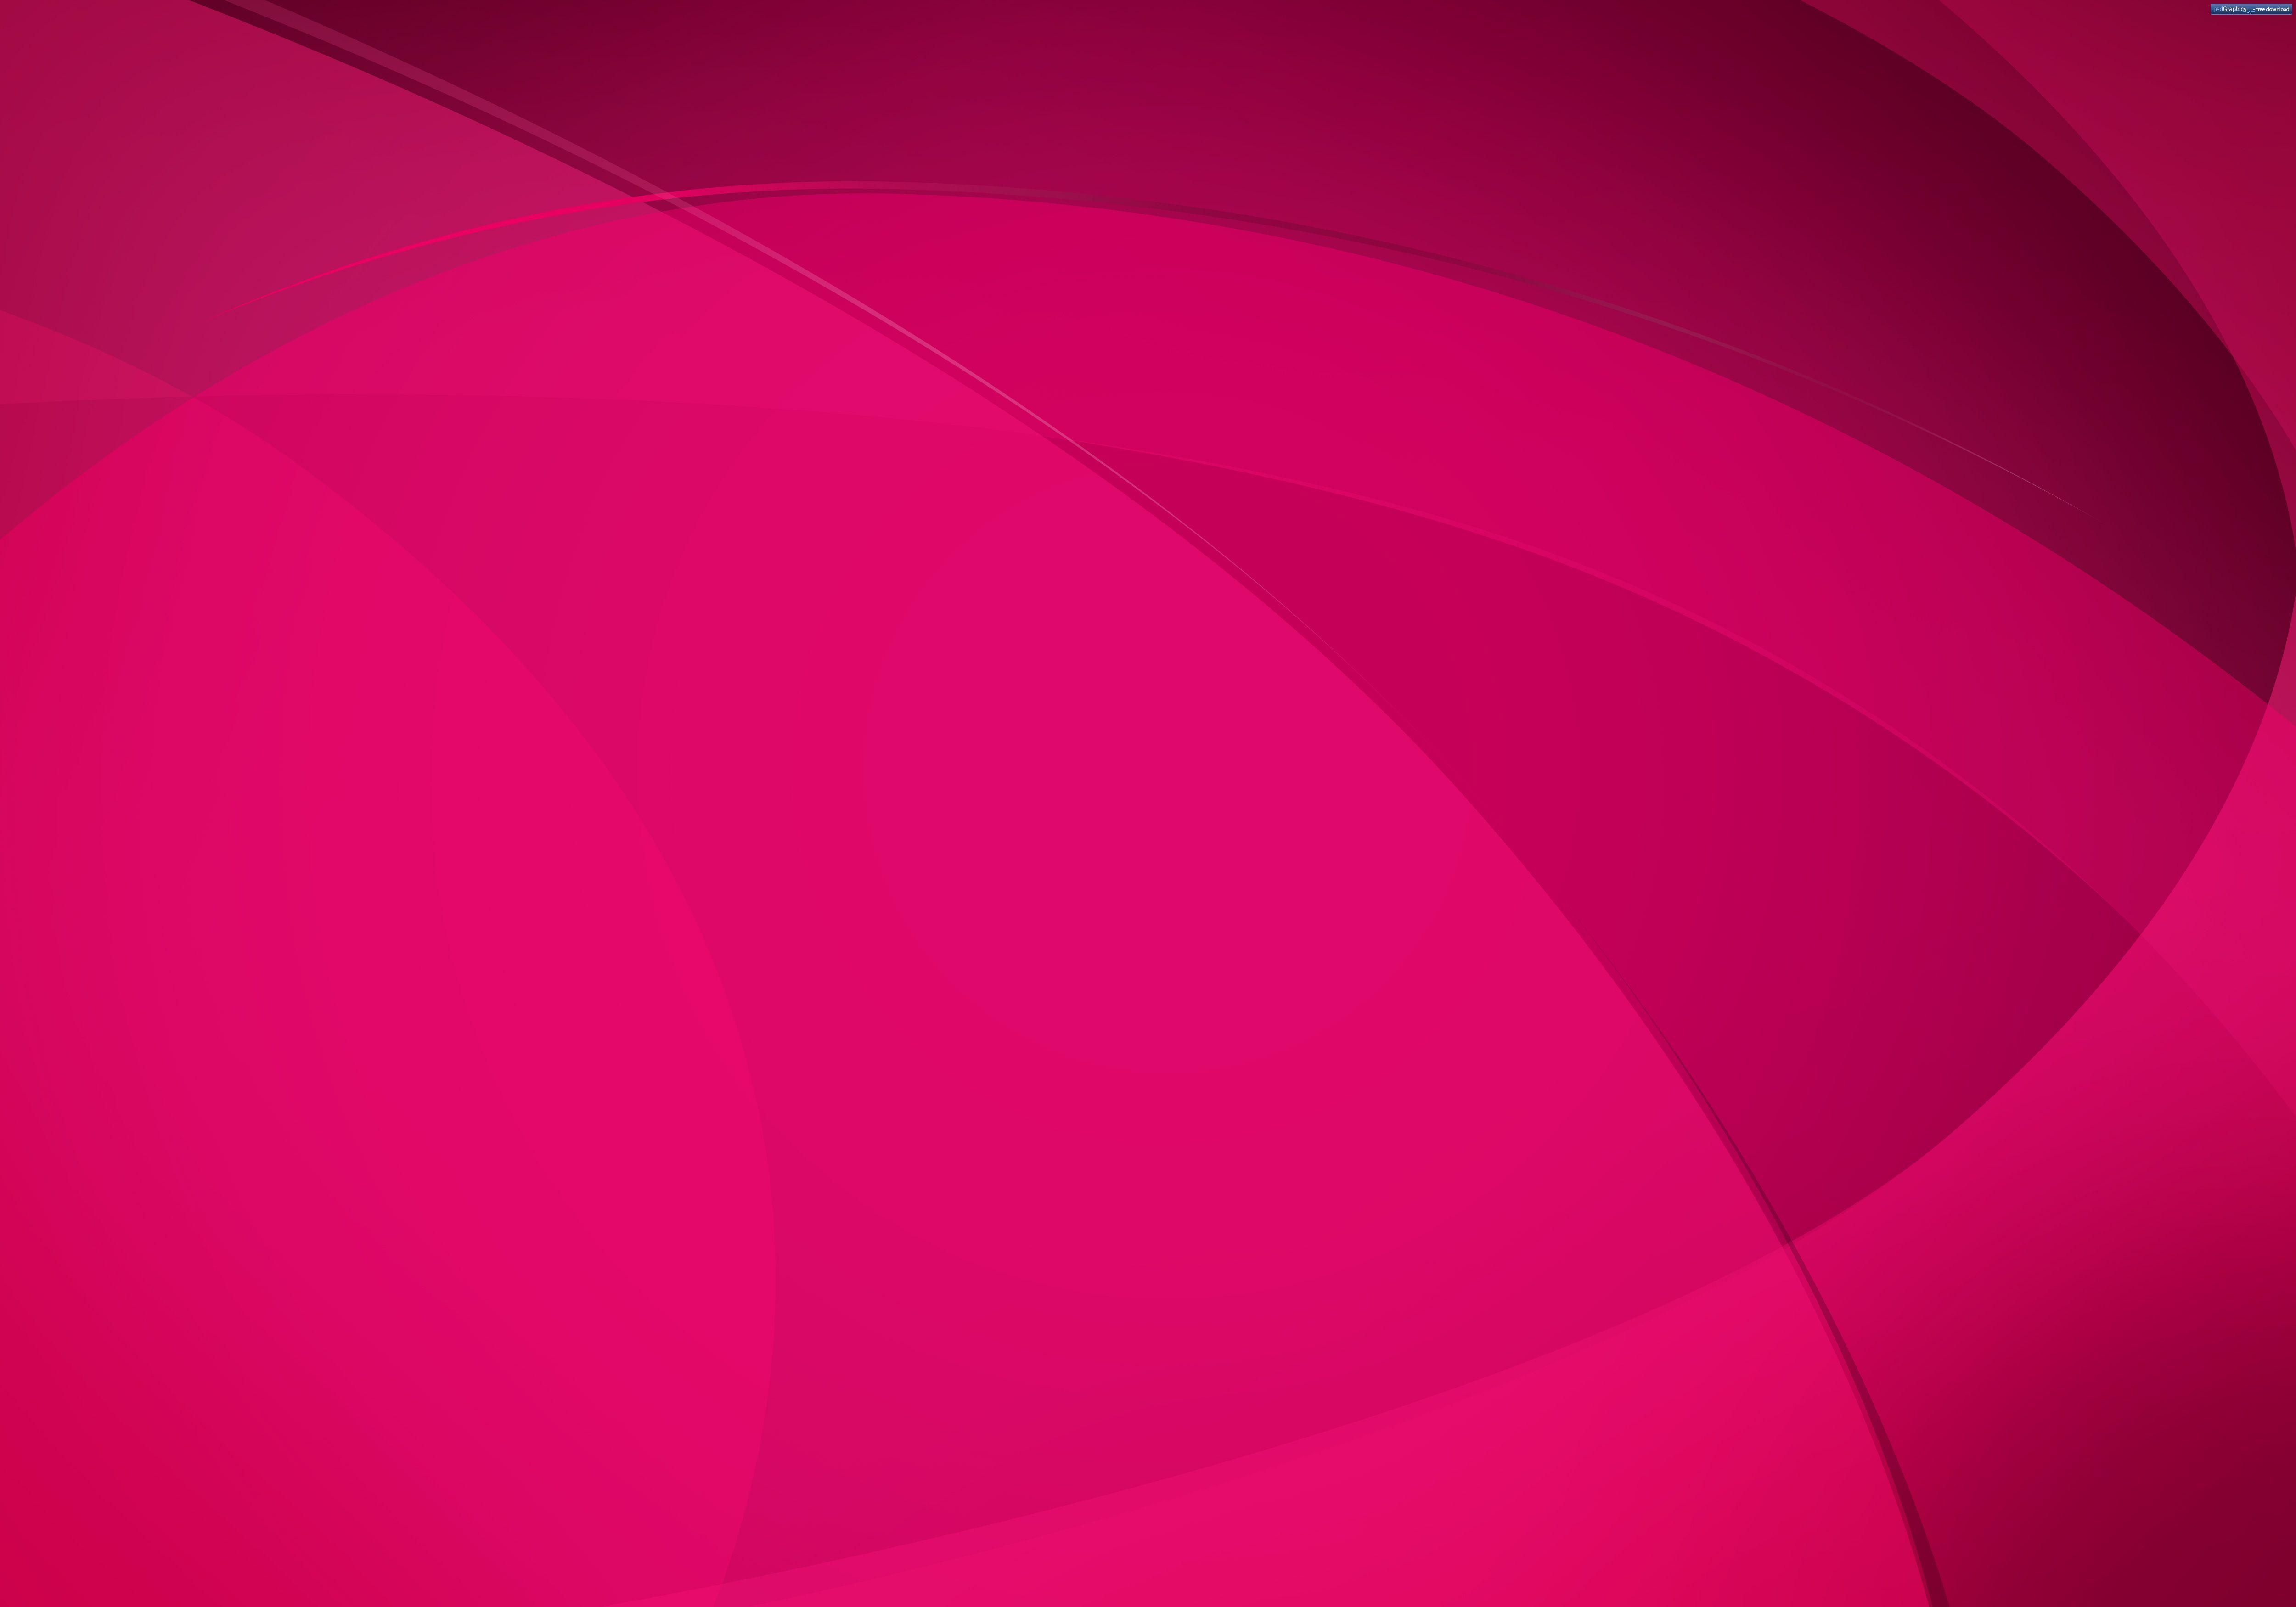 Pink backgrounds wallpapers wallpaper cave wallpapers for plain hot pink backgrounds voltagebd Image collections